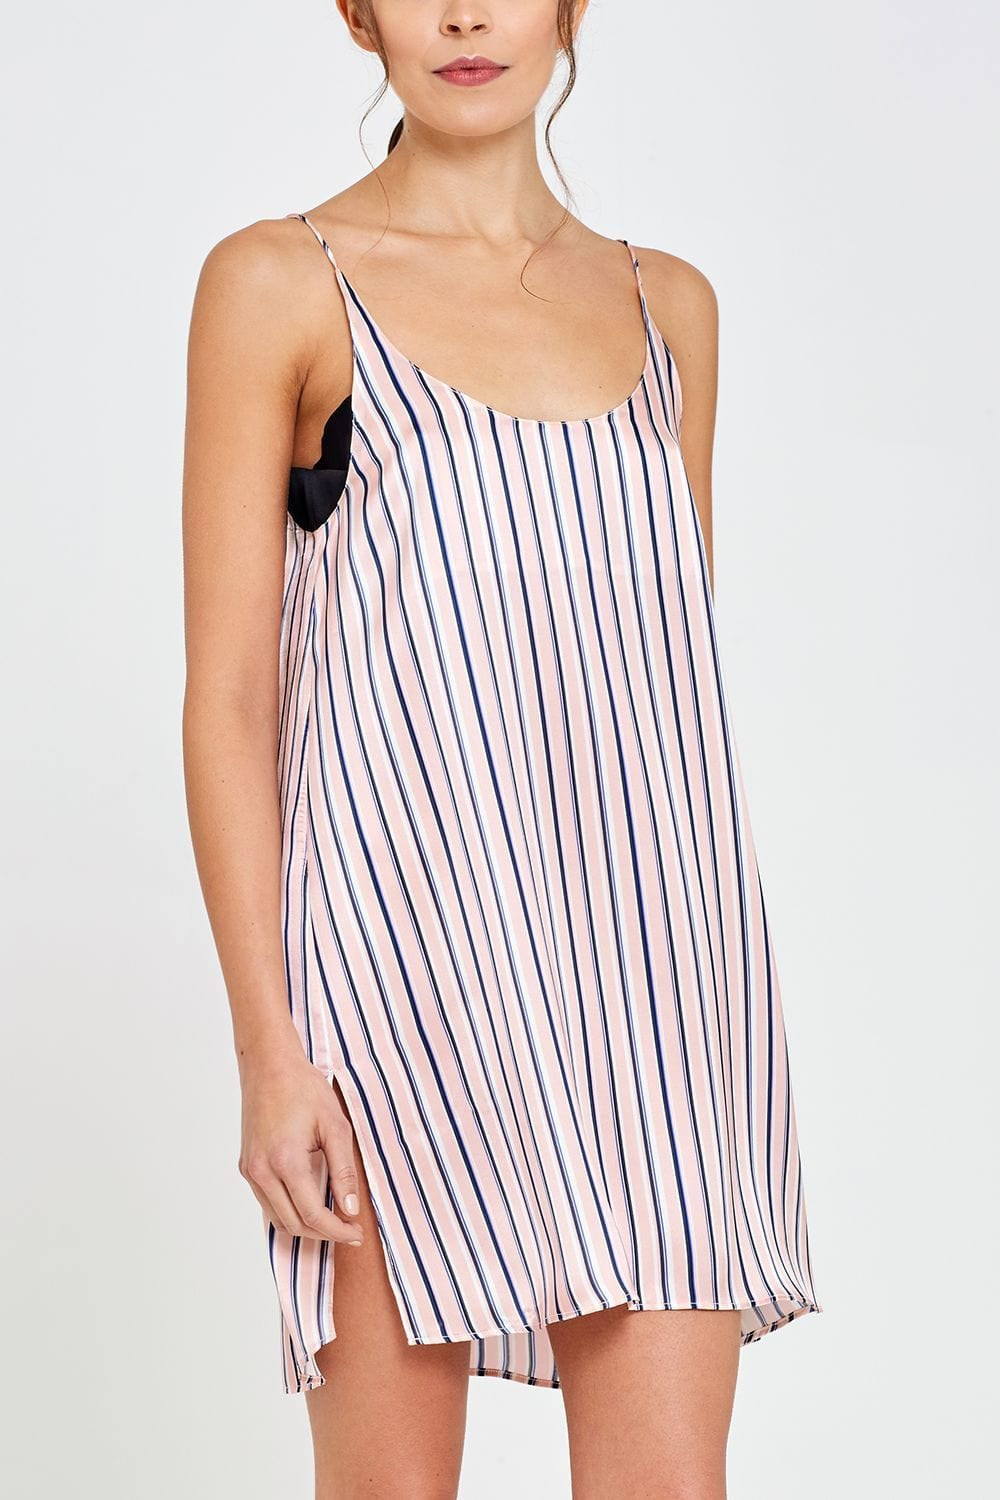 Adeline Shorty Nightdress Thin Stripe Front